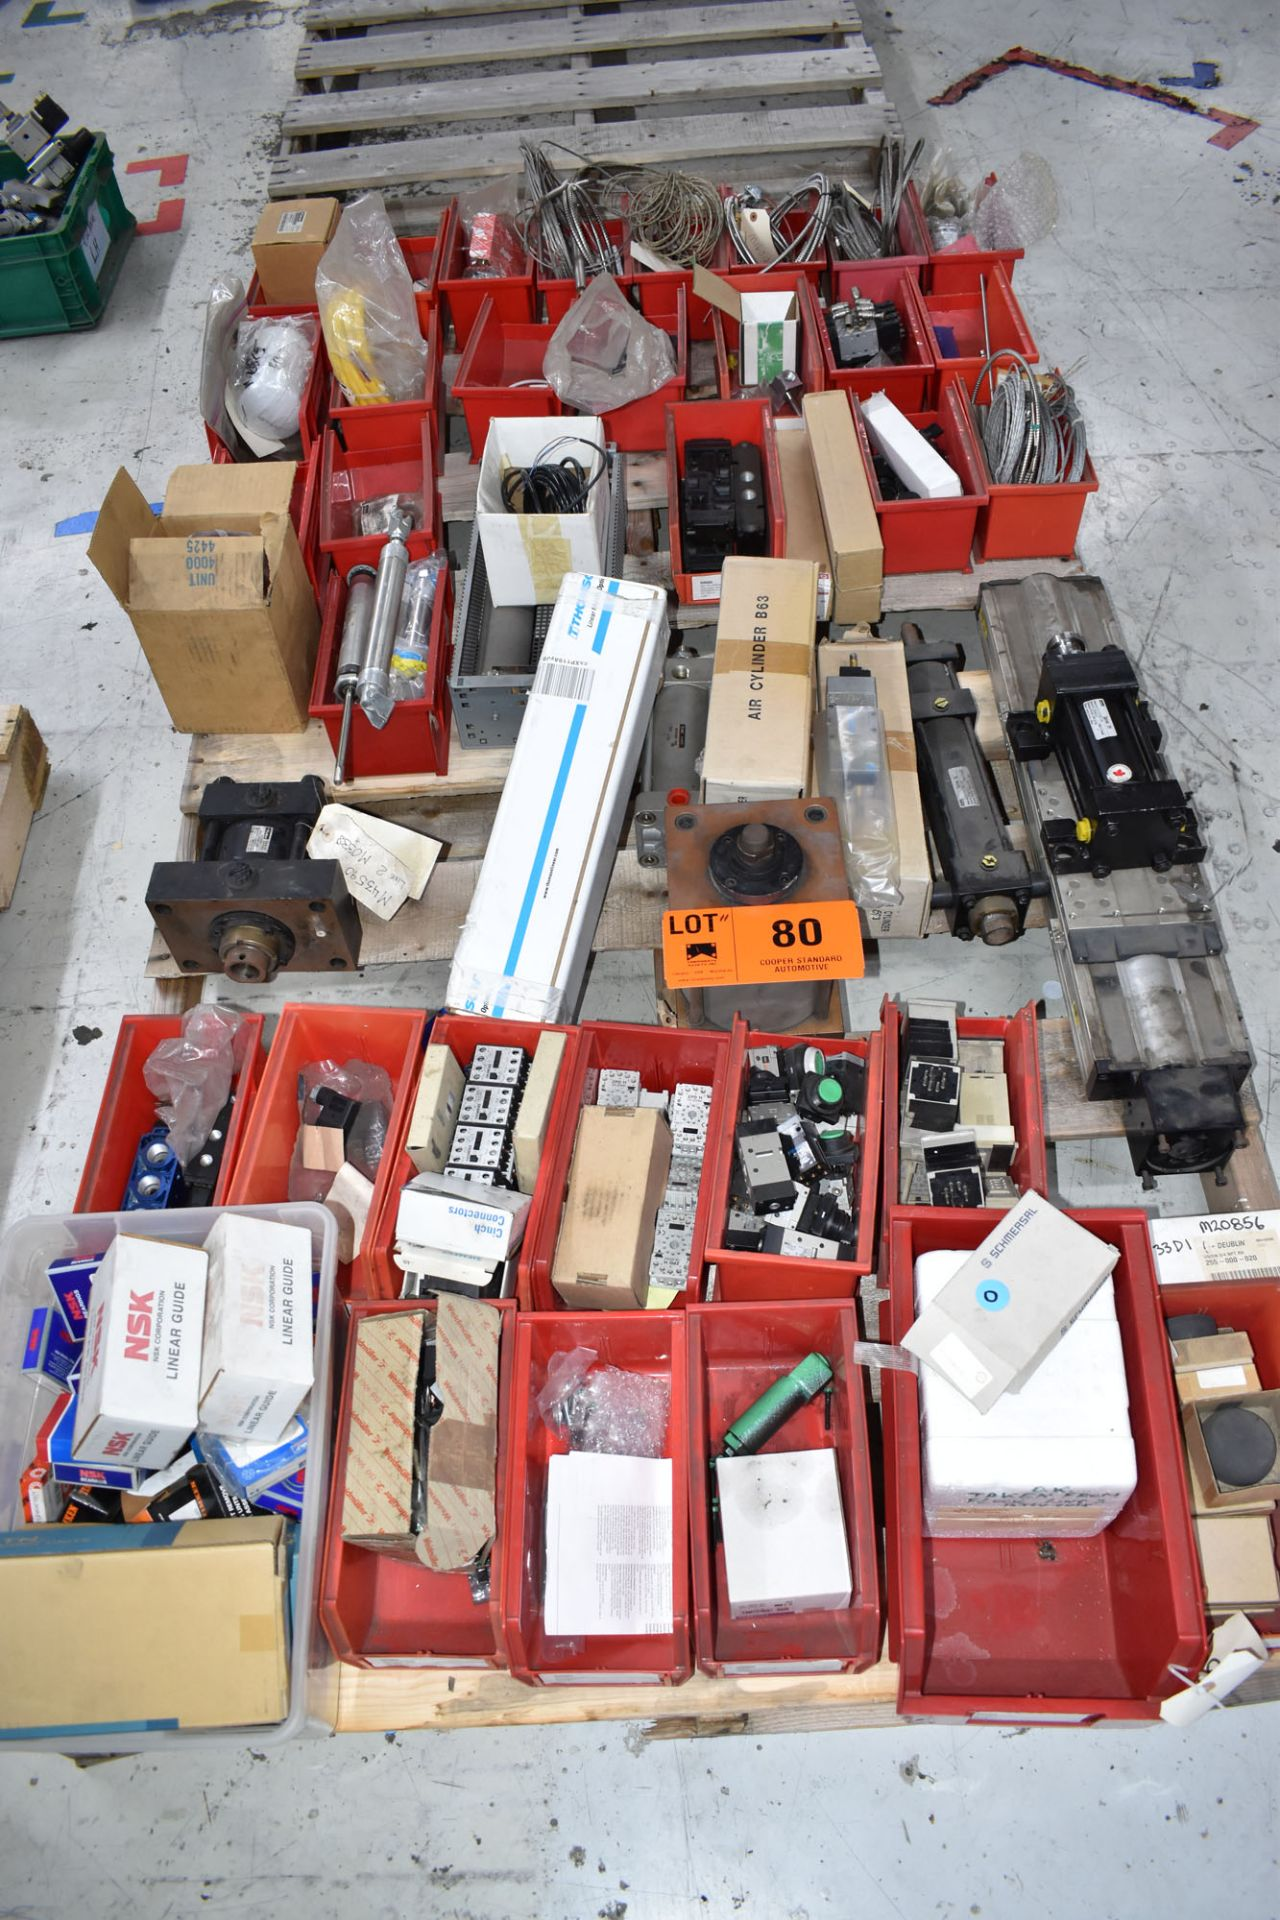 LOT/ PALLET WITH CONTENTS CONSISTING OF BEARINGS, CYLINDERS, AND EXTRUDER LINE COMPONENTS [RIGGING